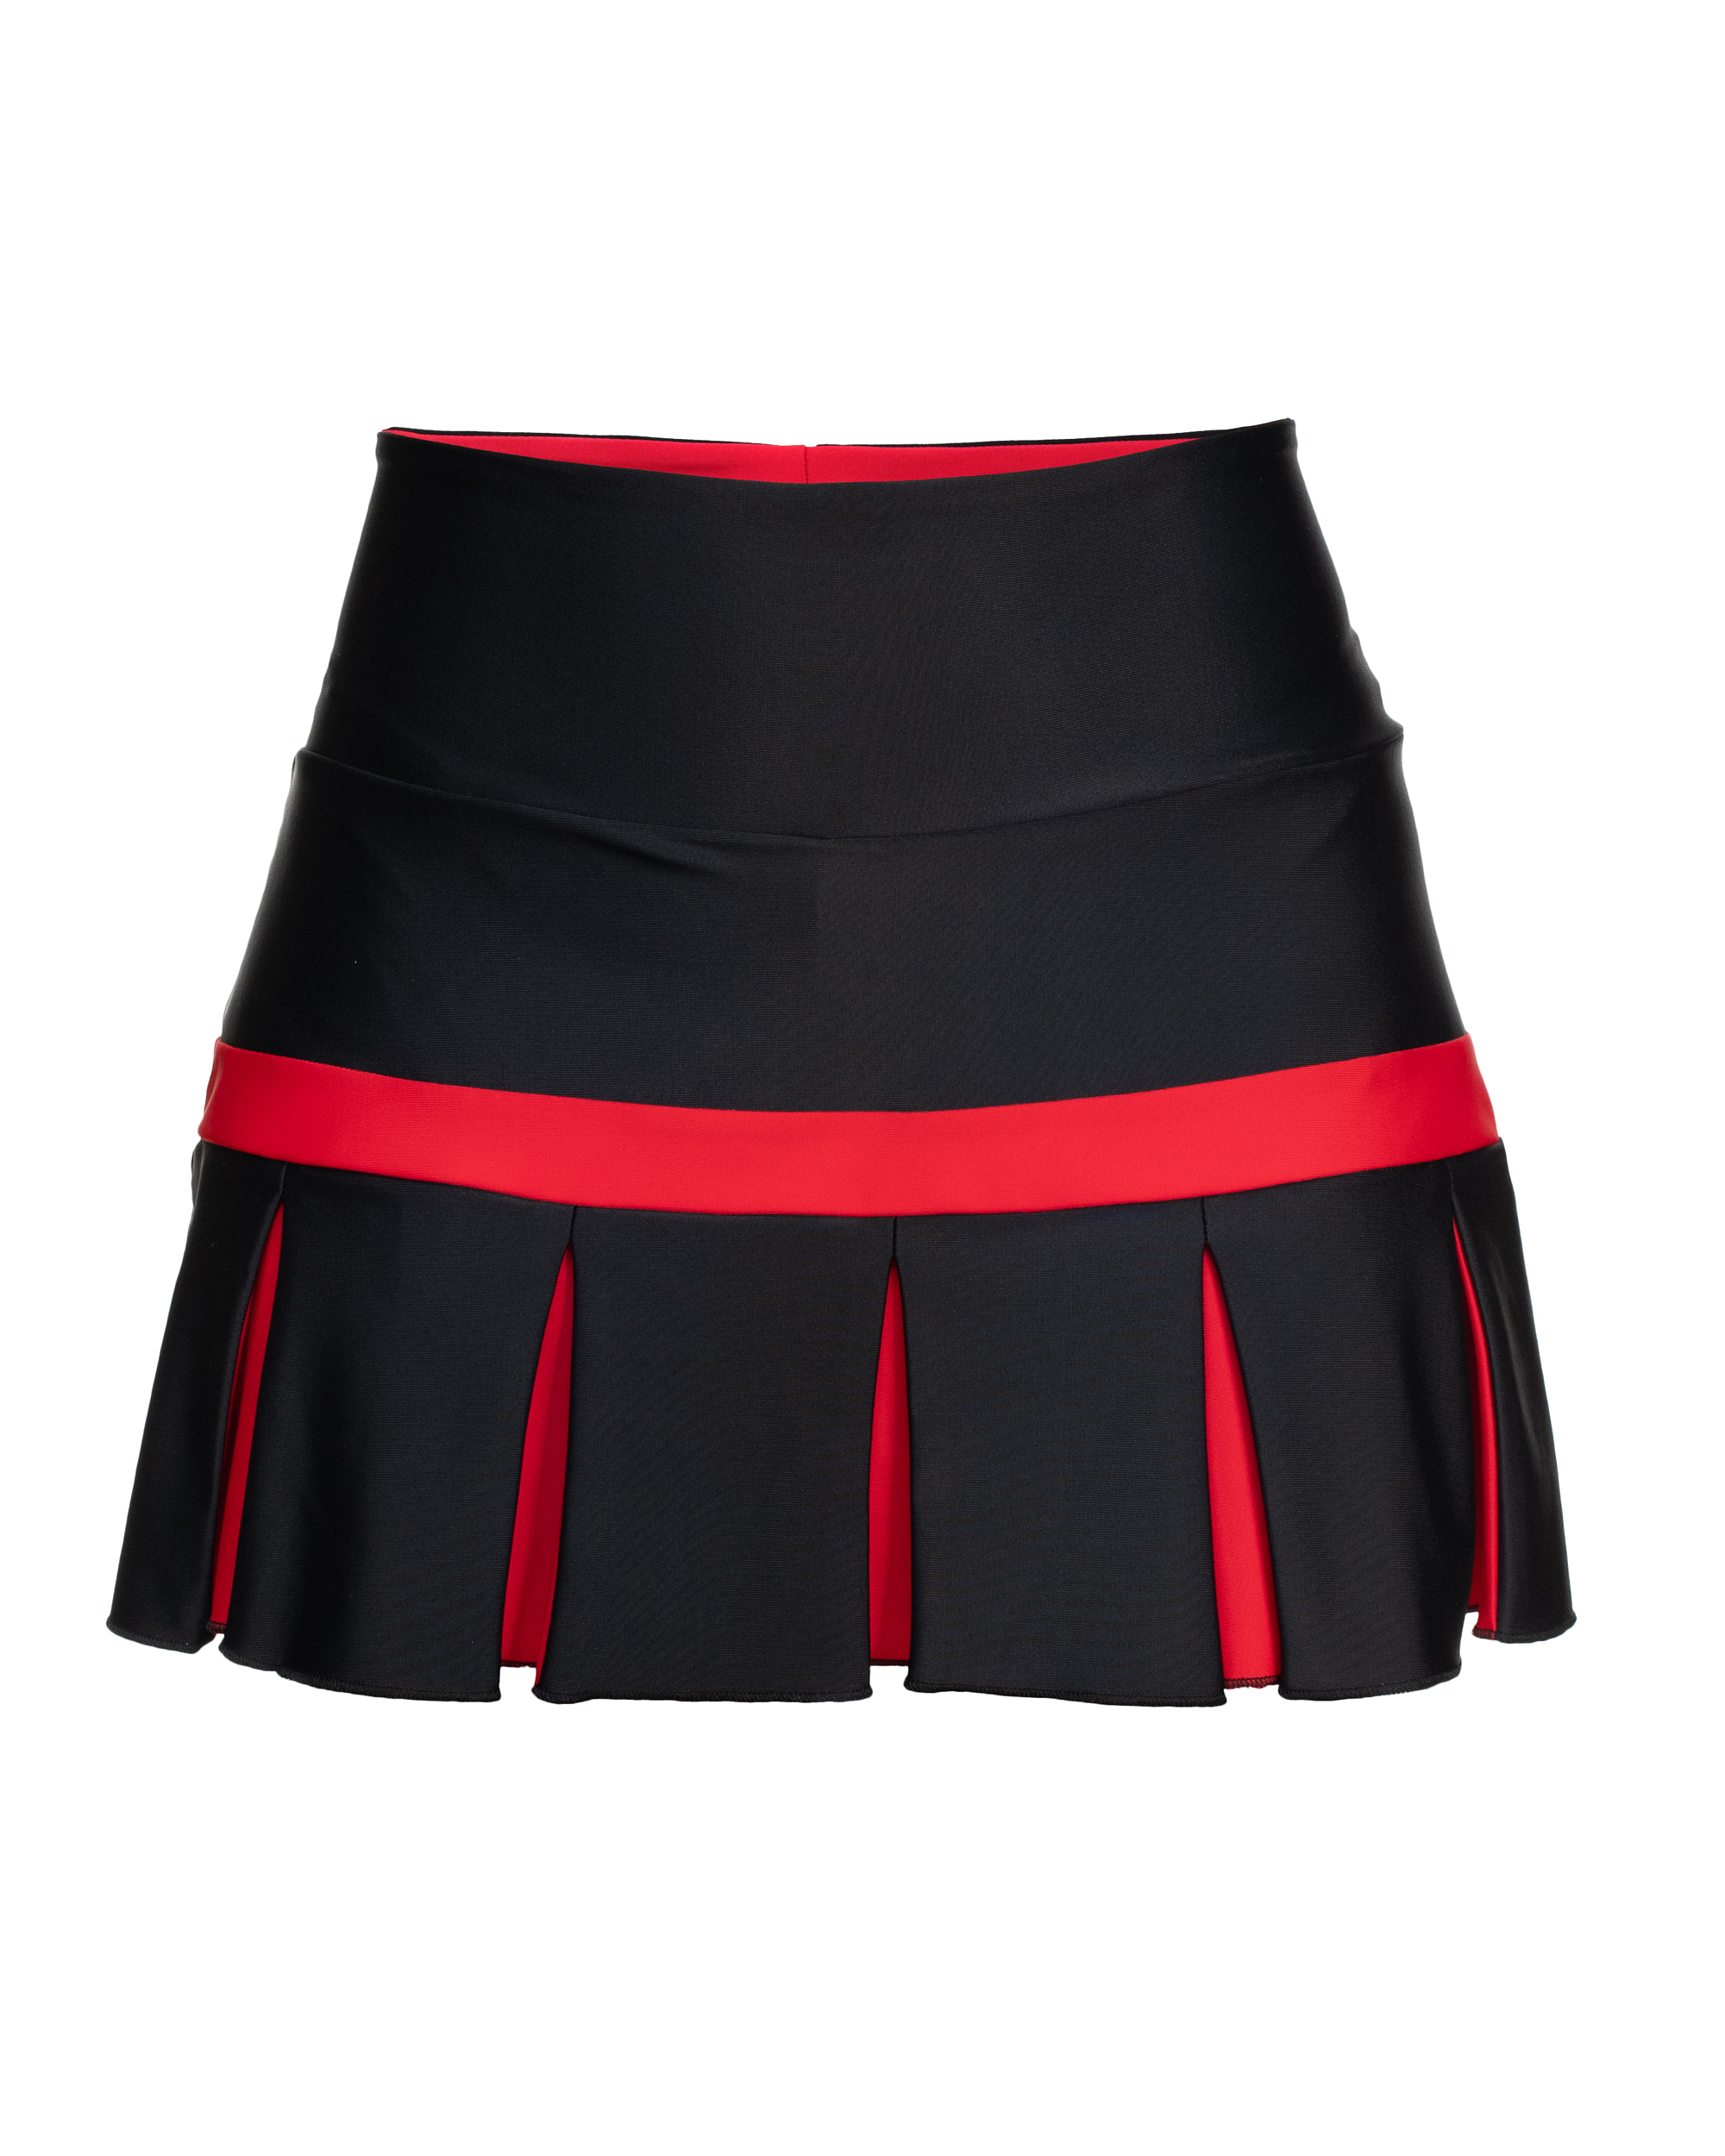 TENNIS SKIRT BLACK JAPAN COLLECTION